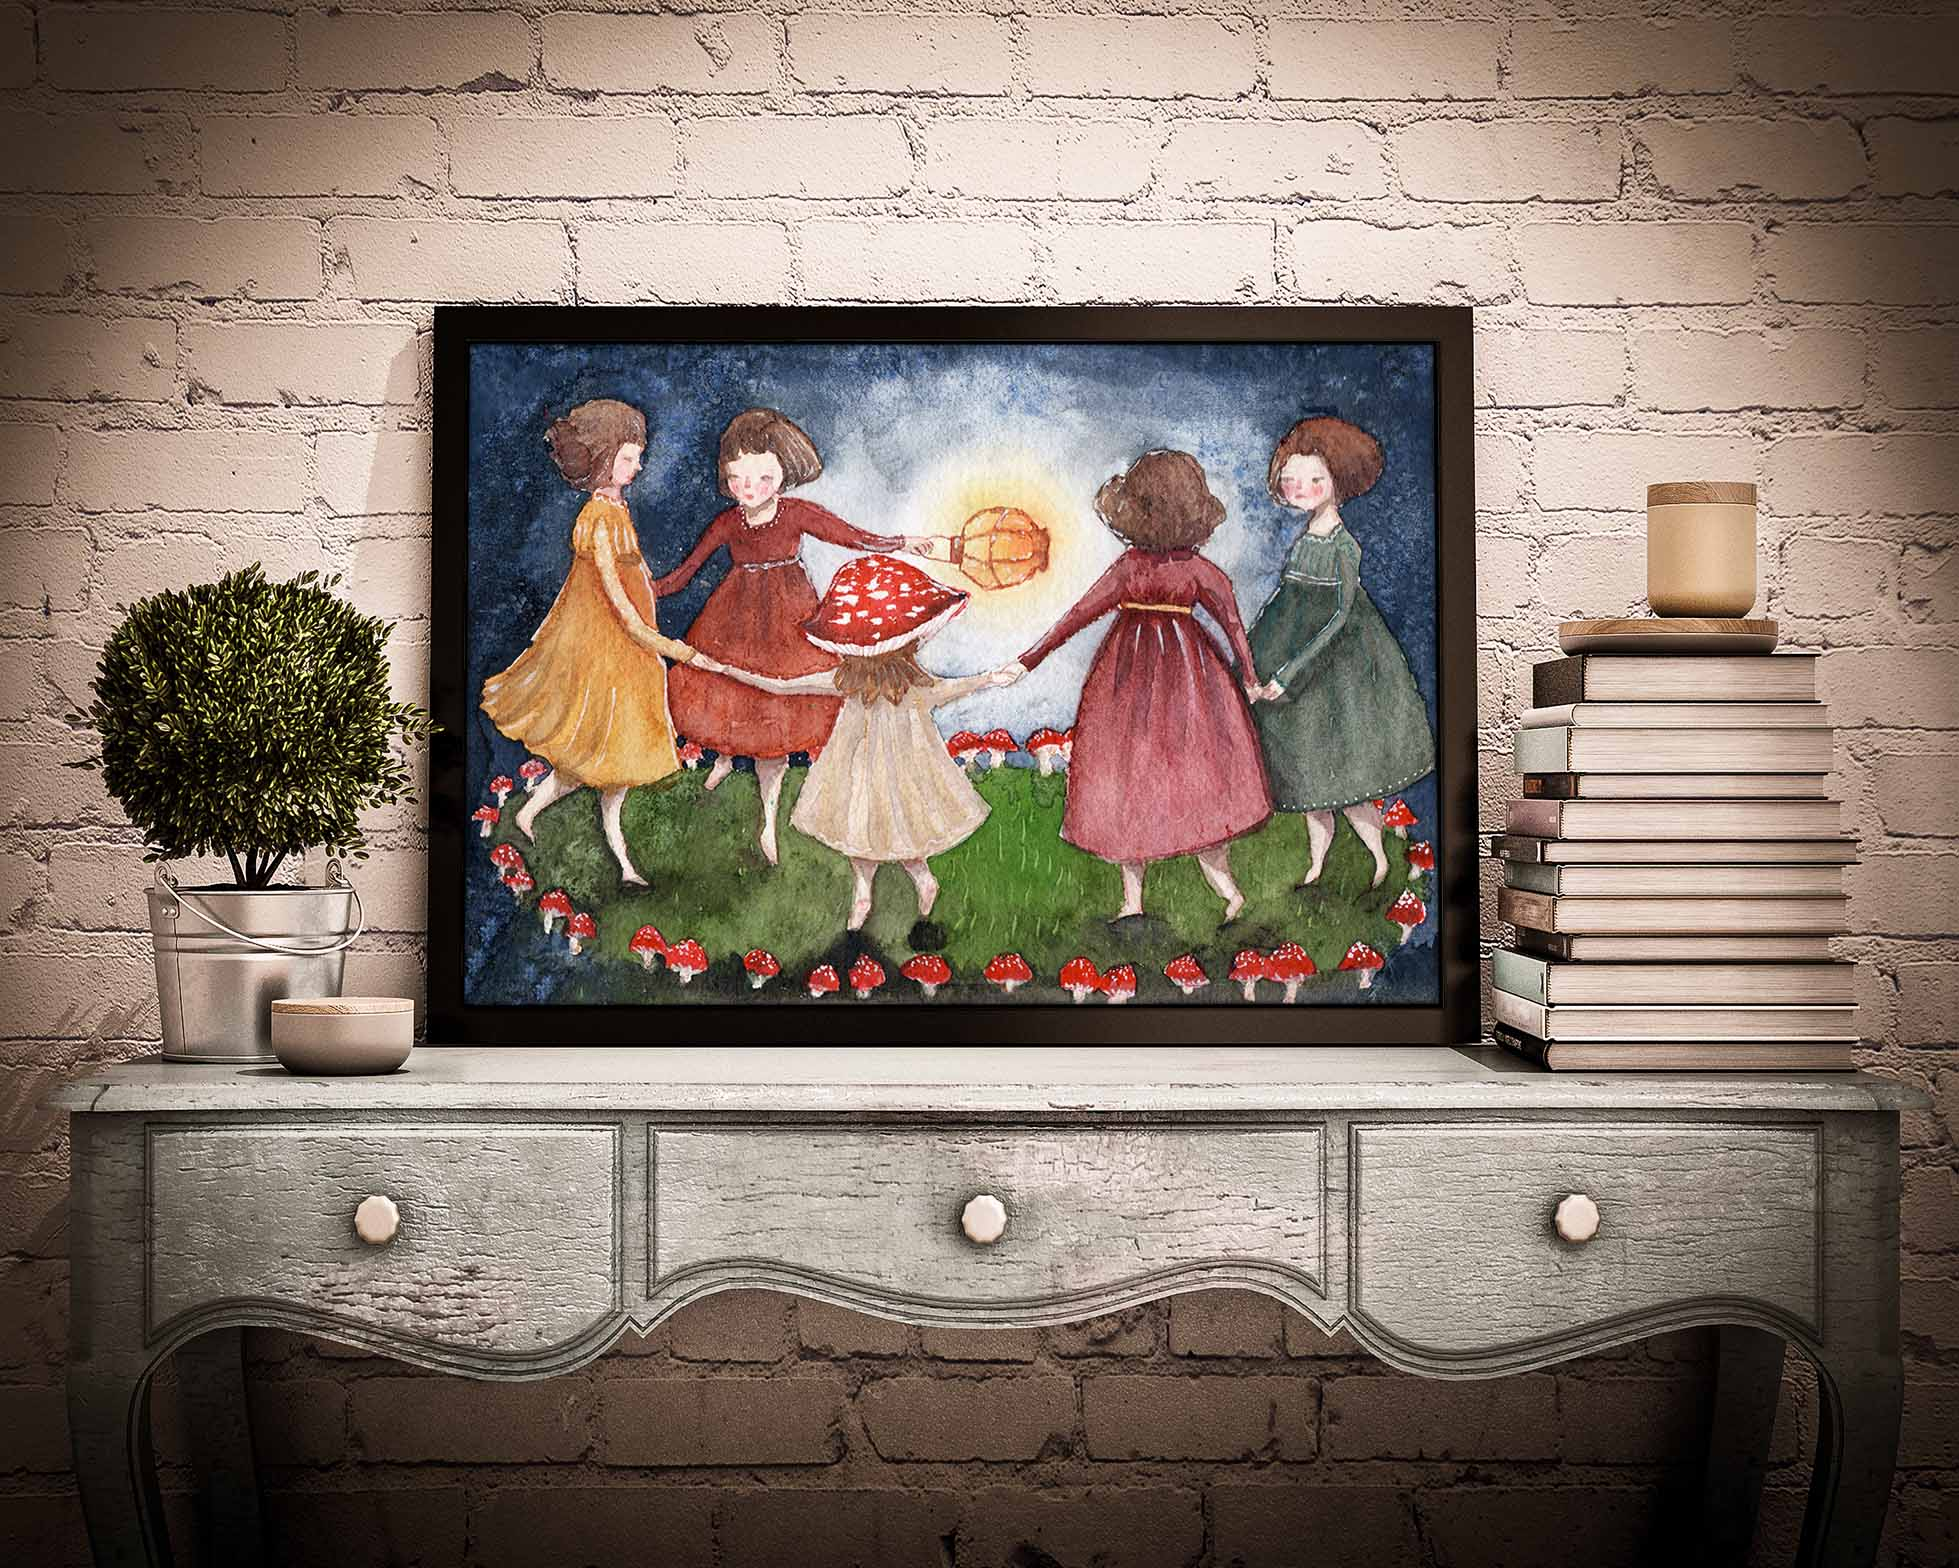 Original reproduction from watercolor painting by Idania Salcido Danita Art. Five girls dance enchanted by the forest midnight with a lantern, as they dance in a fairy mushroom and toadstool fairy ring.